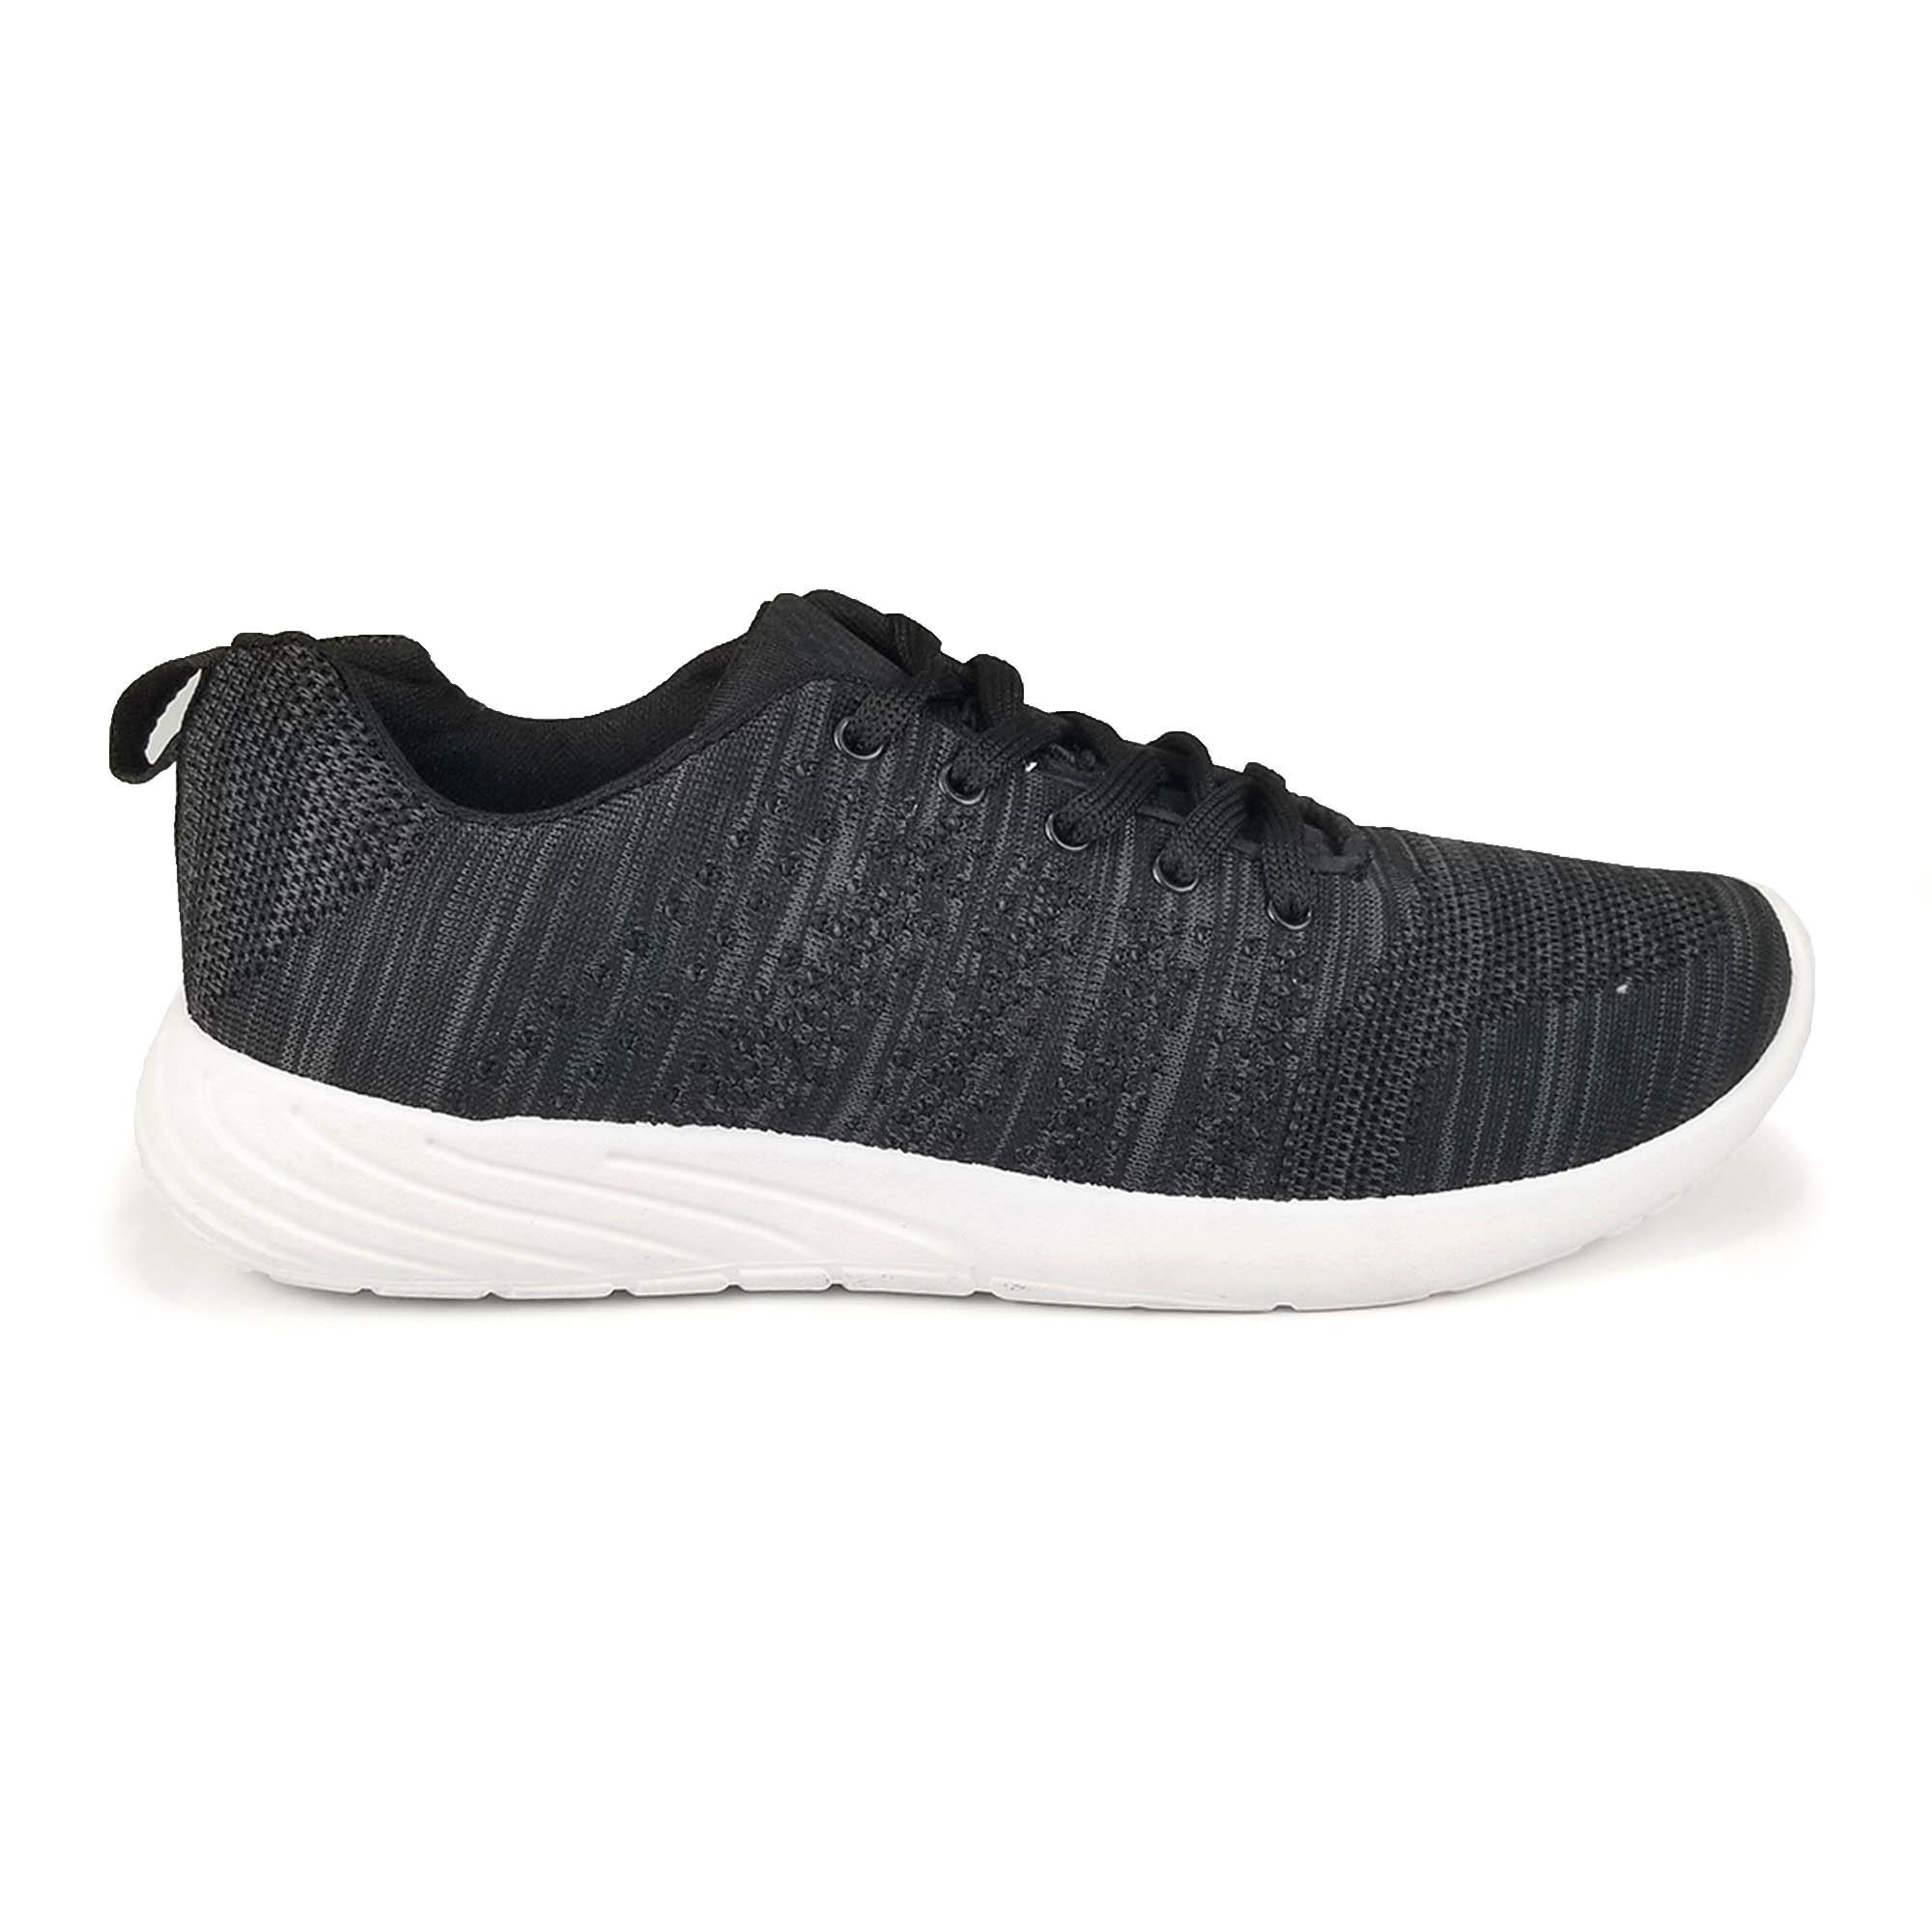 detailed look 591a2 700d1 NICK ULTRA Running Sports Shoes For Men